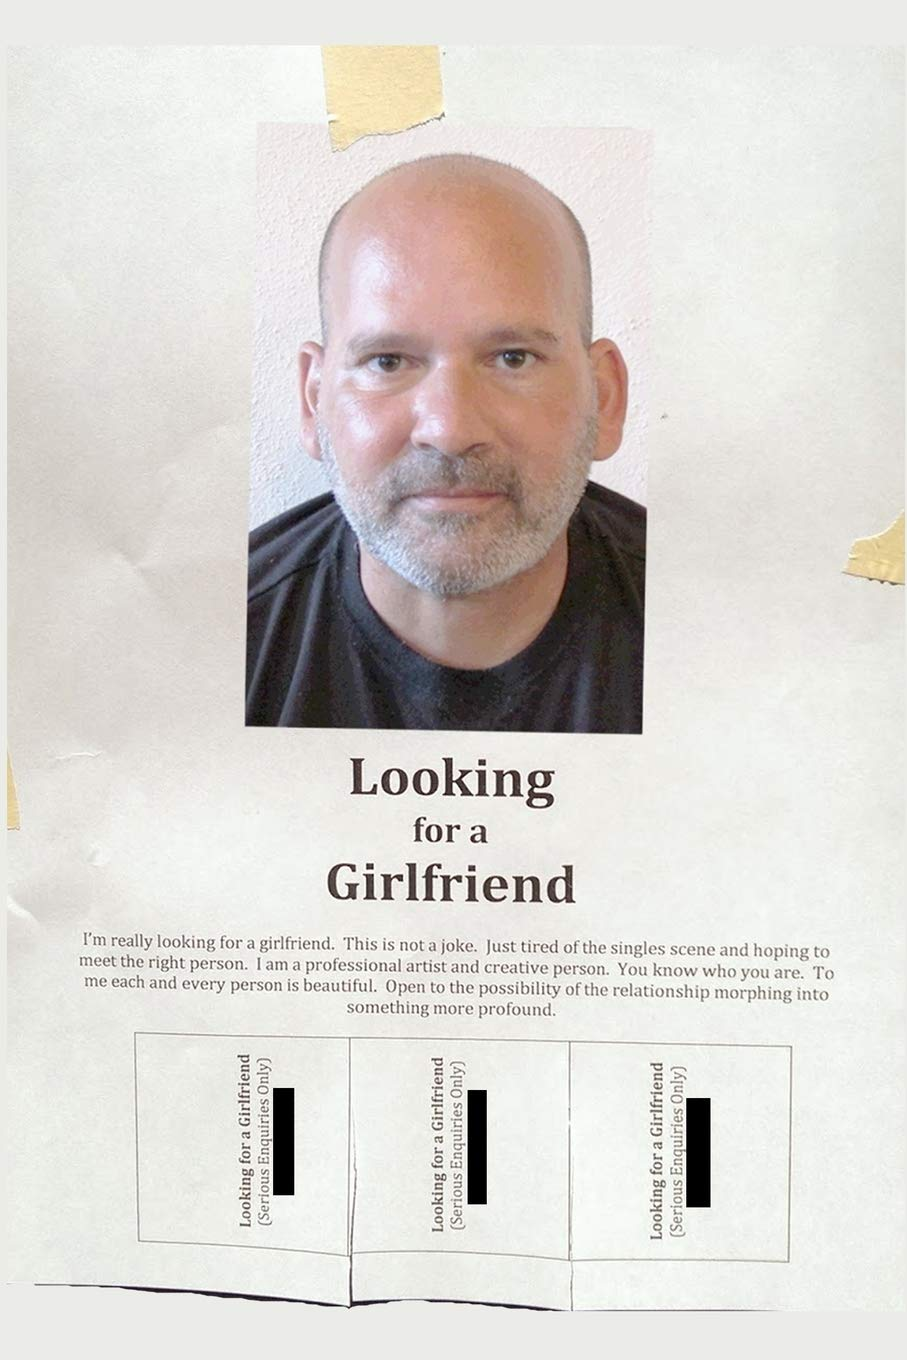 Looking for dutch girl